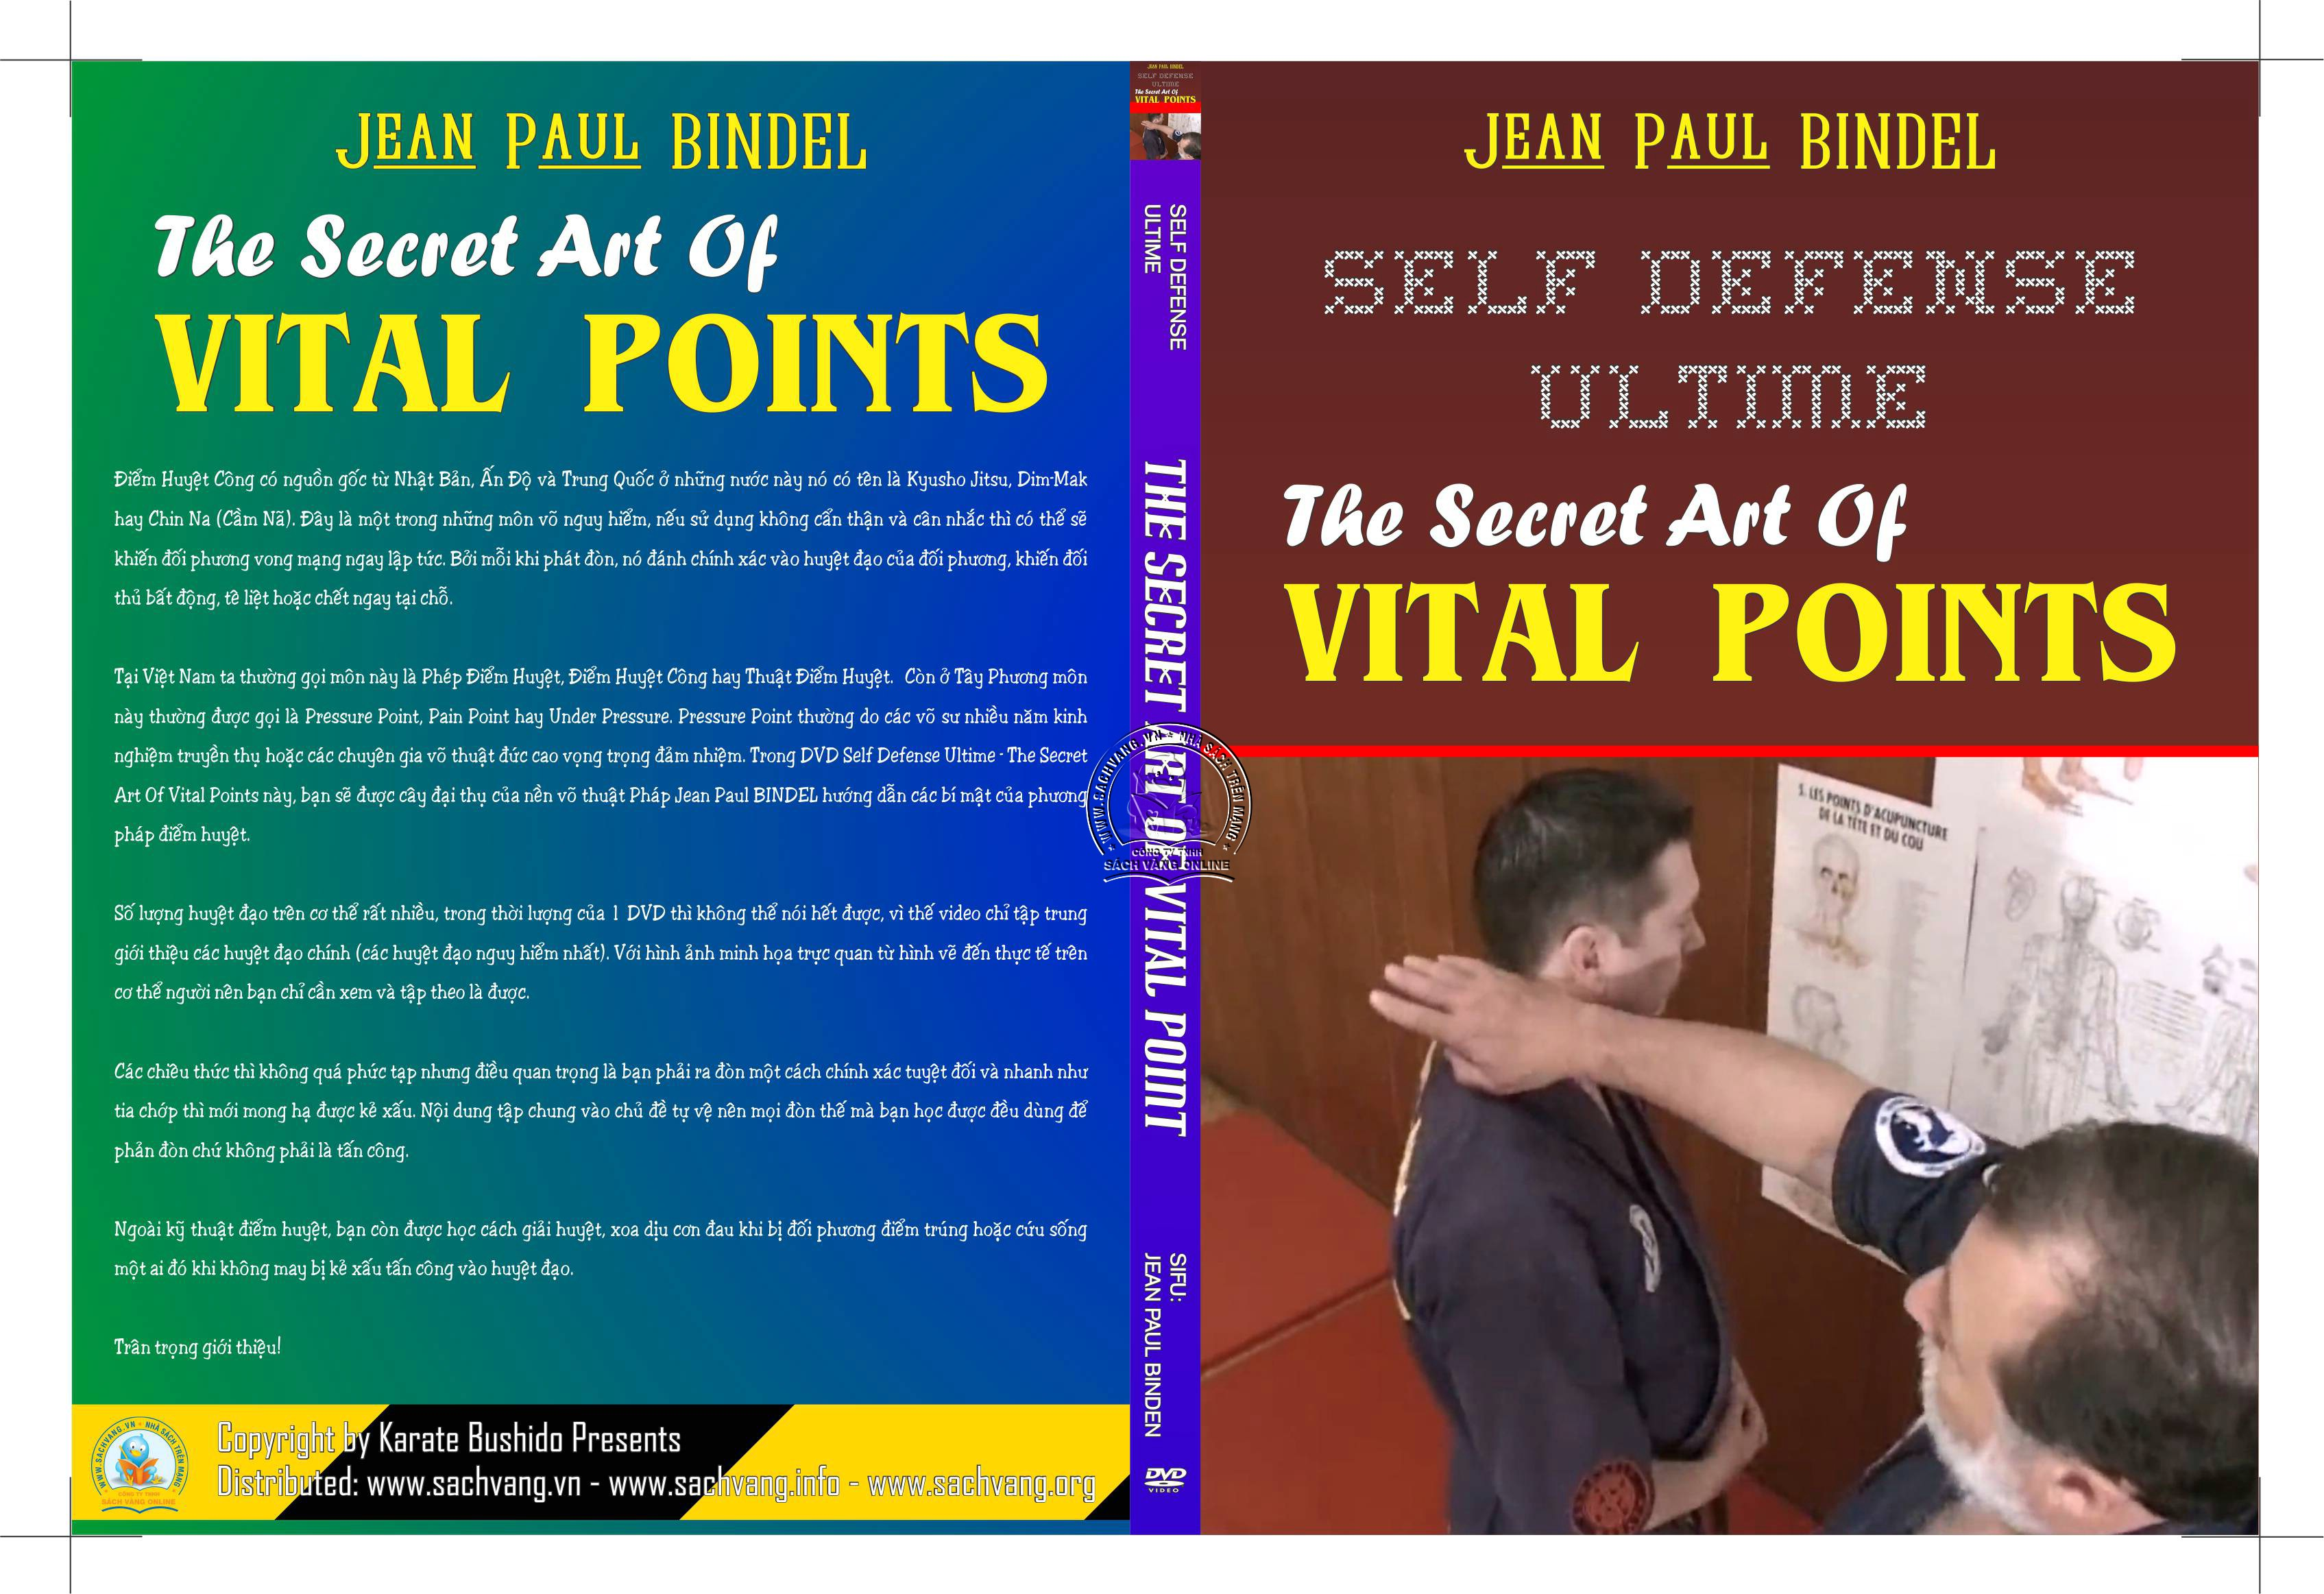 Self Defense Ultime - The Secret Art Of Vital Points - Kỹ Pháp Điểm Và Giải Huyệt - Cover